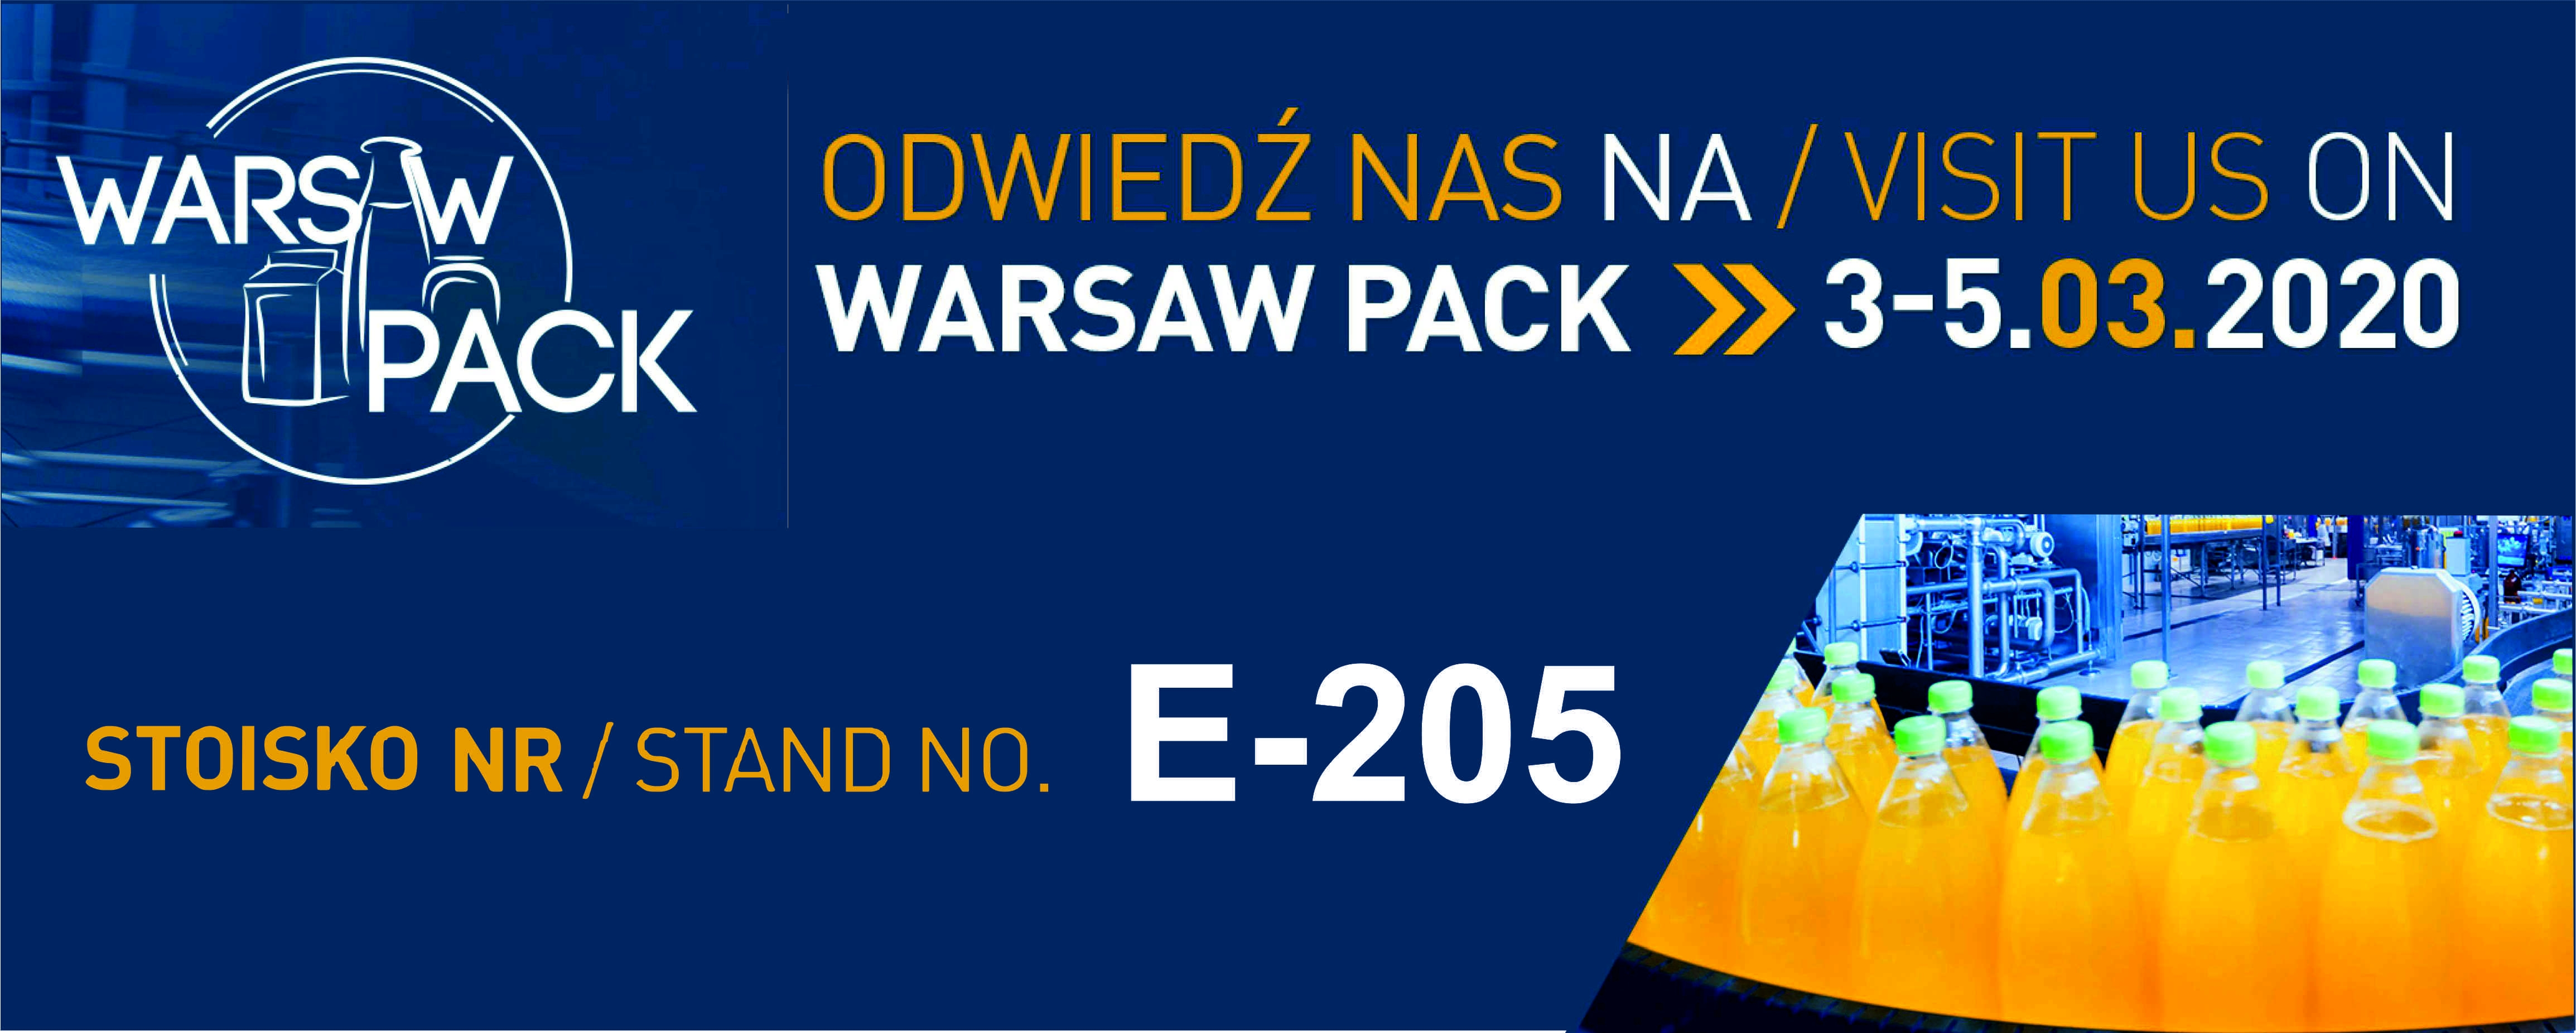 Visit us on Trade Show in Warsaw!